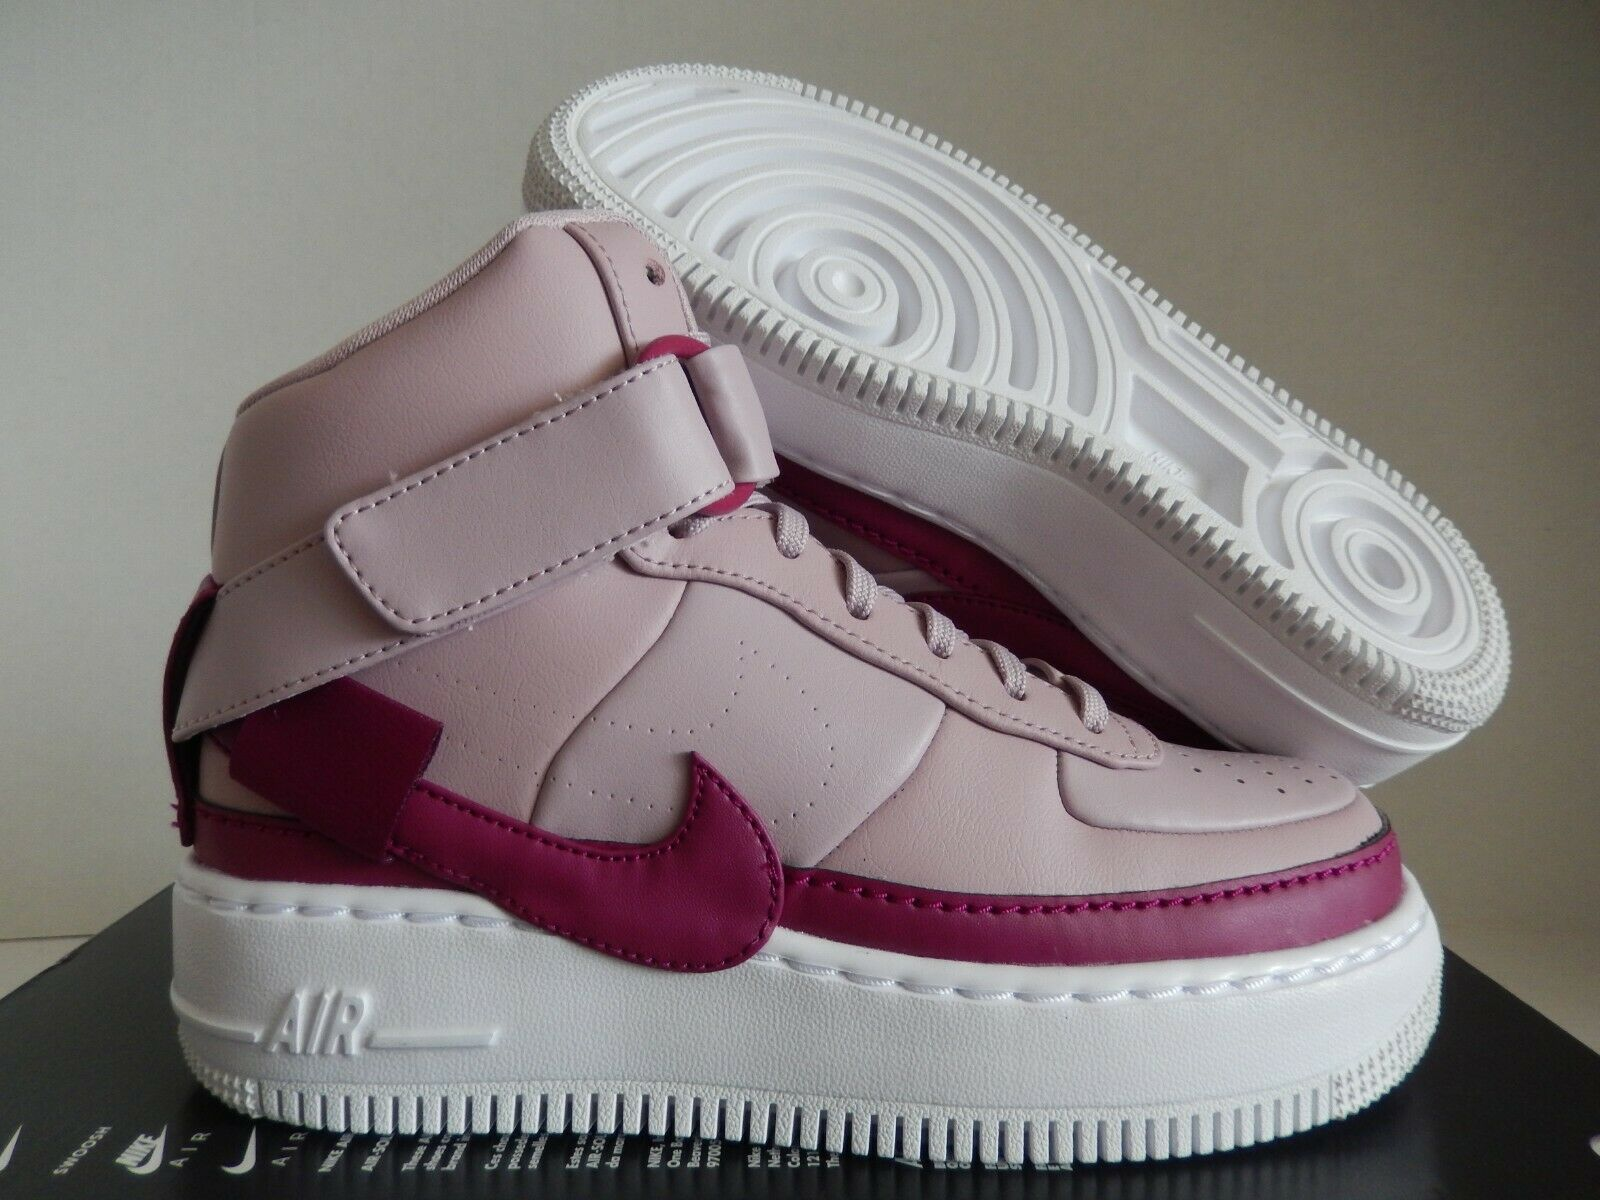 WMNS AF1 AIR FORCE 1 JESTER HI XX PLUM CHALK-TRUE BERRY-WHITE SZ 6 [AR0625-501]